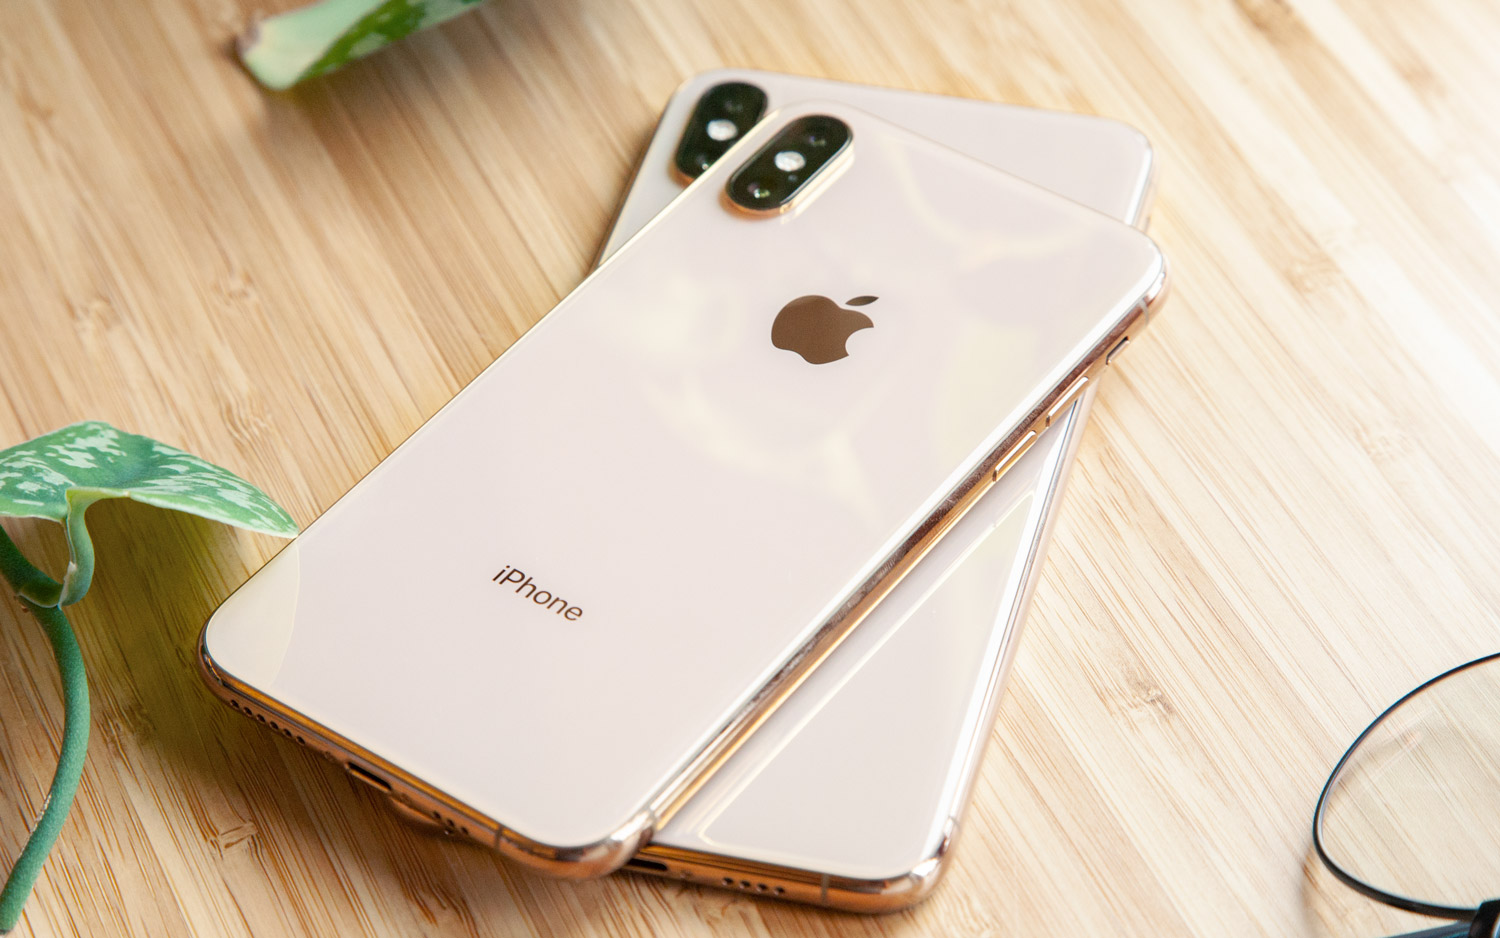 Apple Reportedly Cancels Major iPhone 11 Camera Upgrade